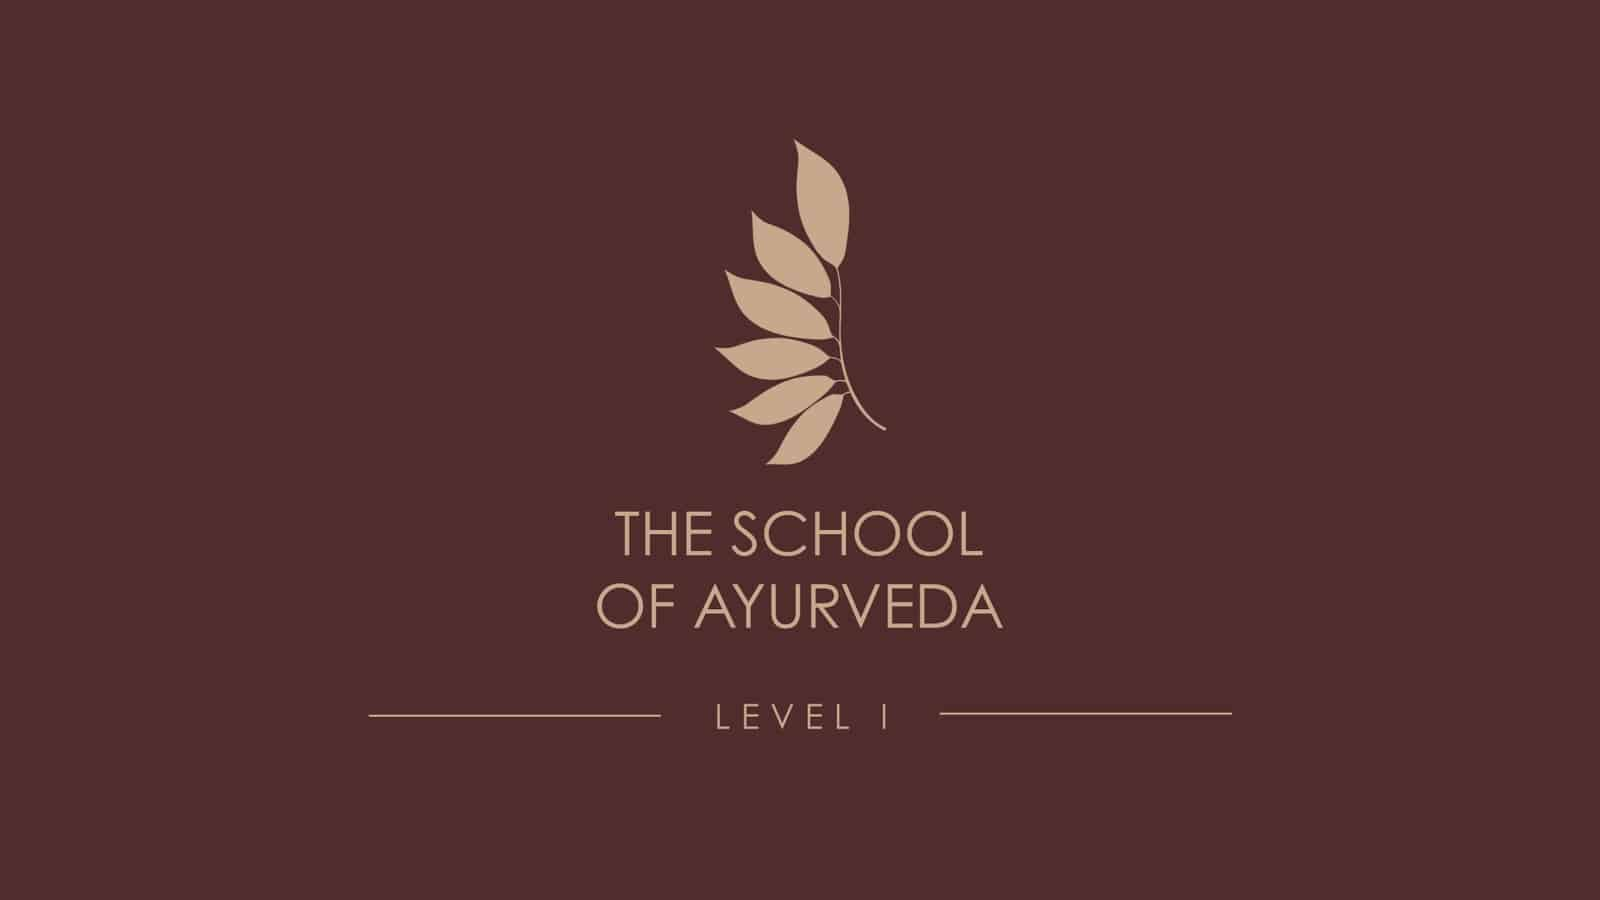 The School of Ayurveda Level I